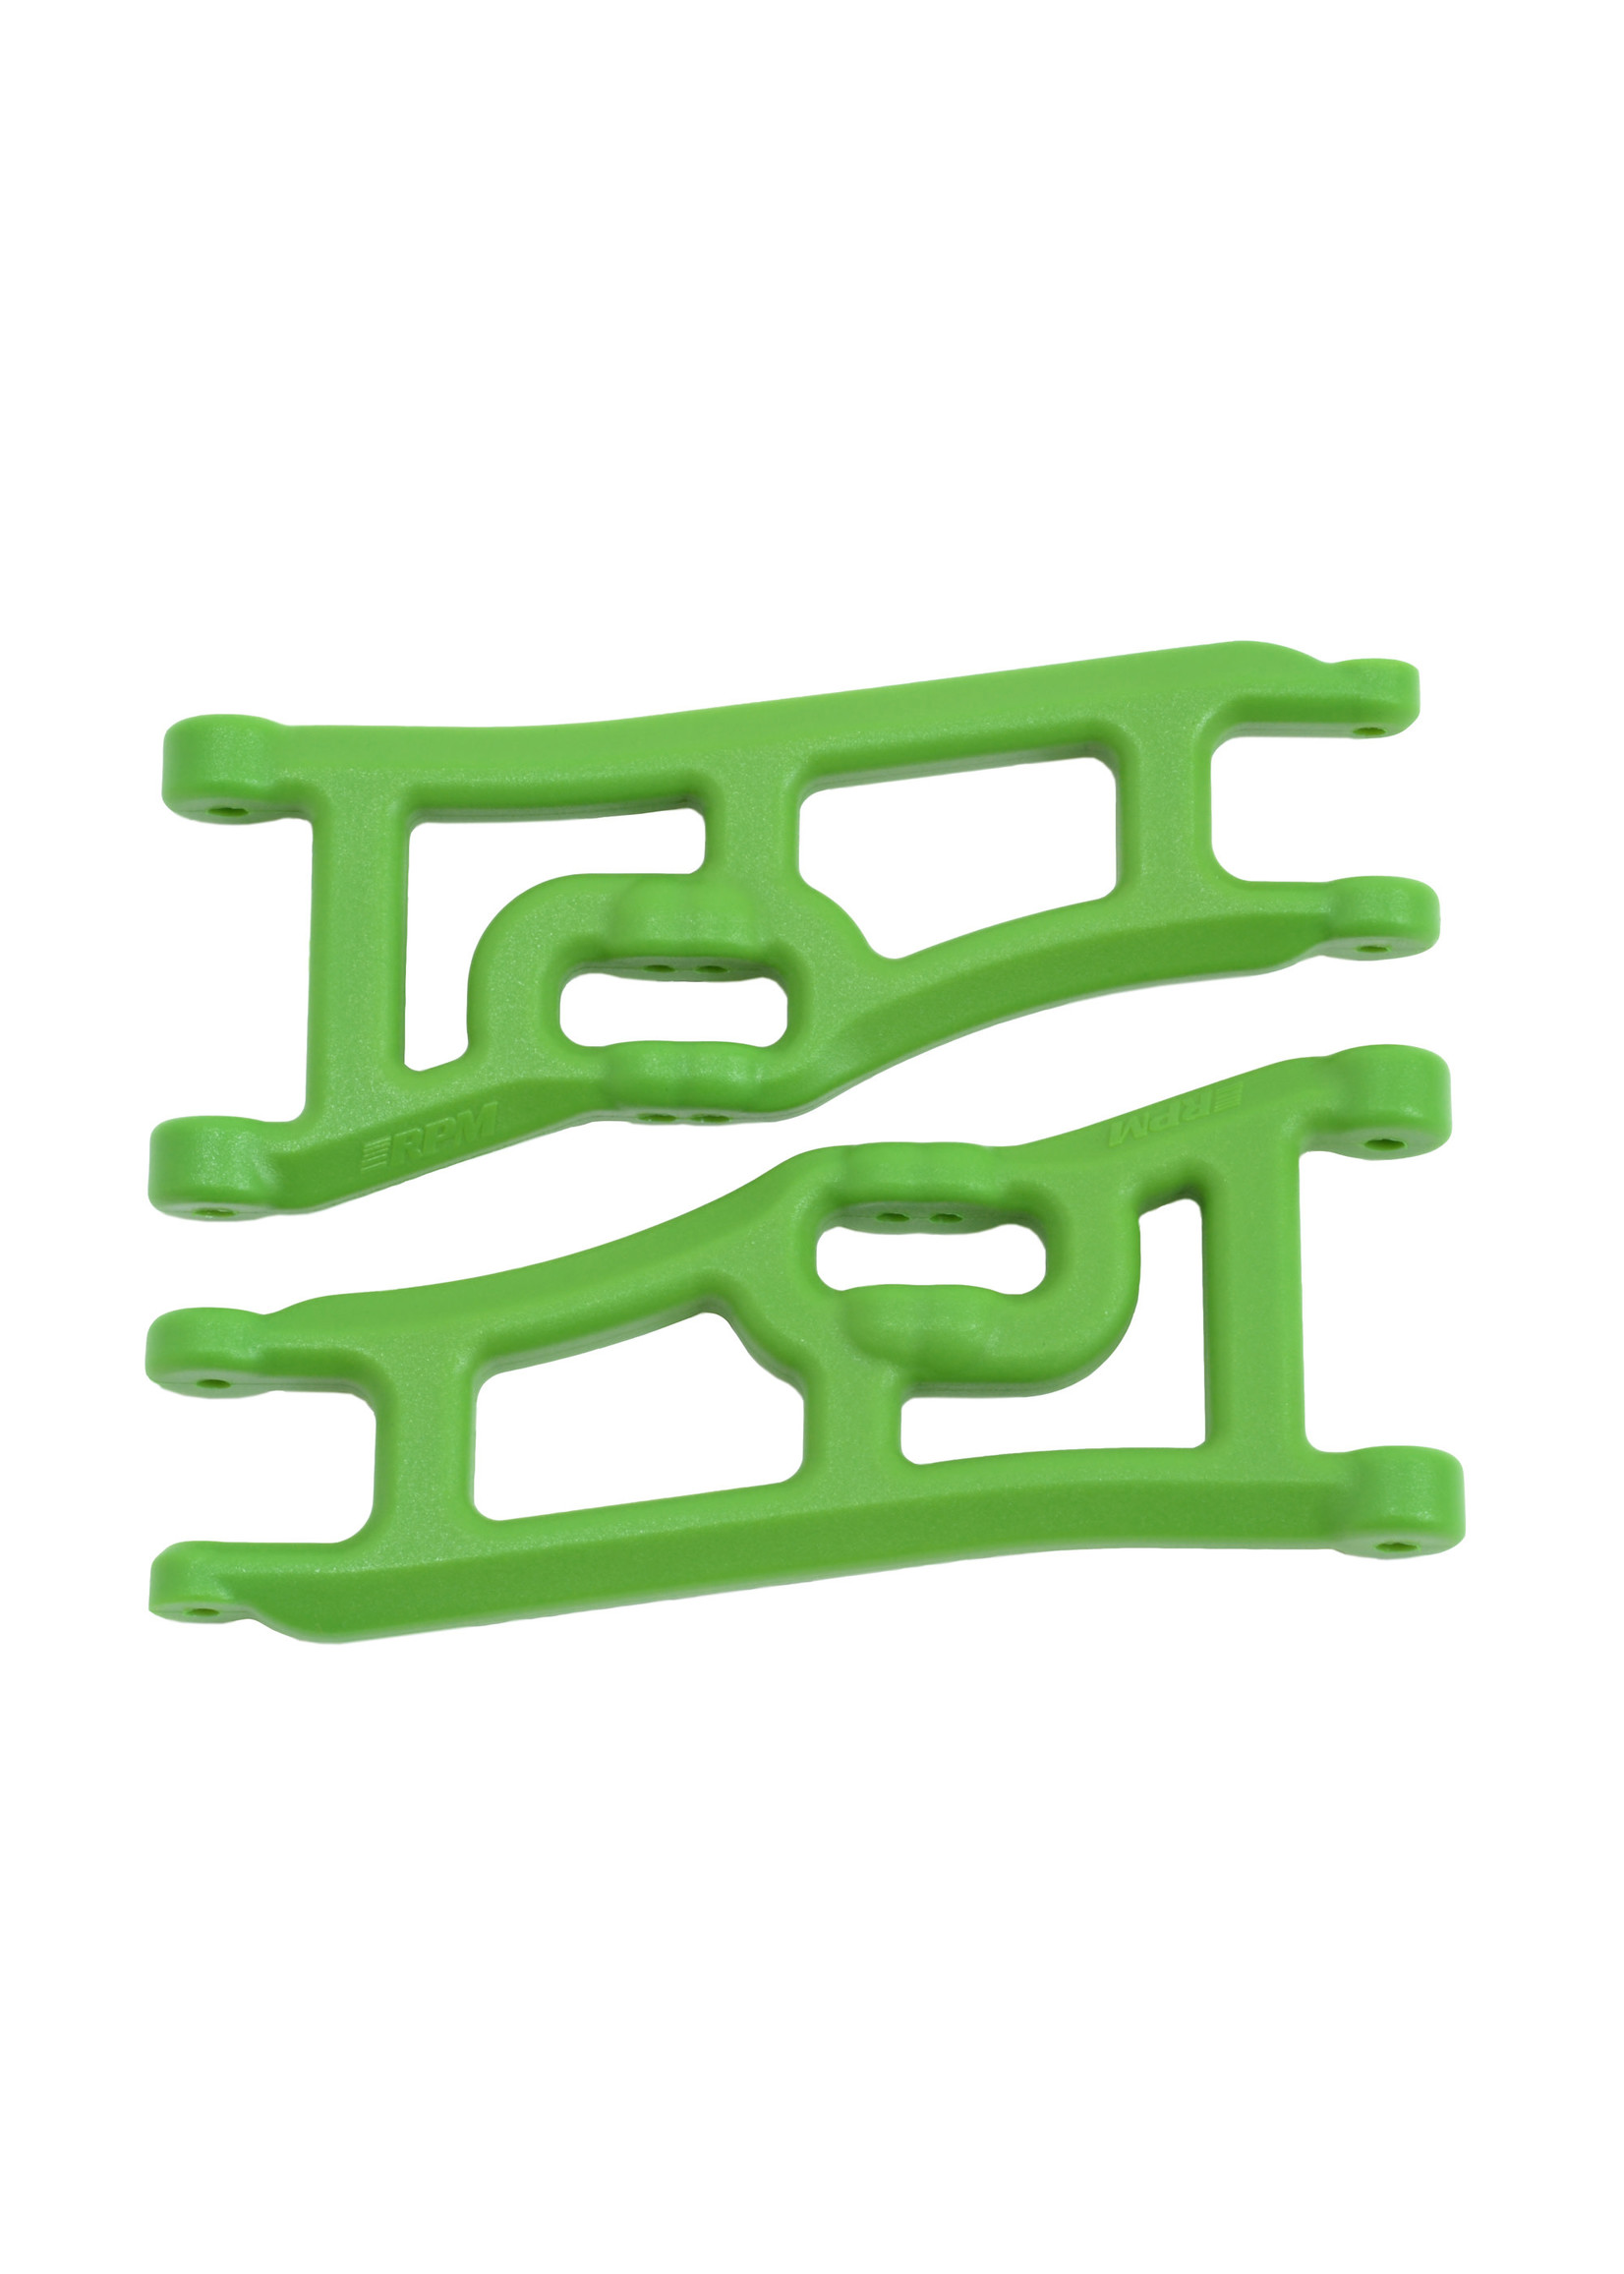 RPM RPM70664 RPM Wide Front A-arms for the Traxxas e-Rustler & Stampede 2wd - Green